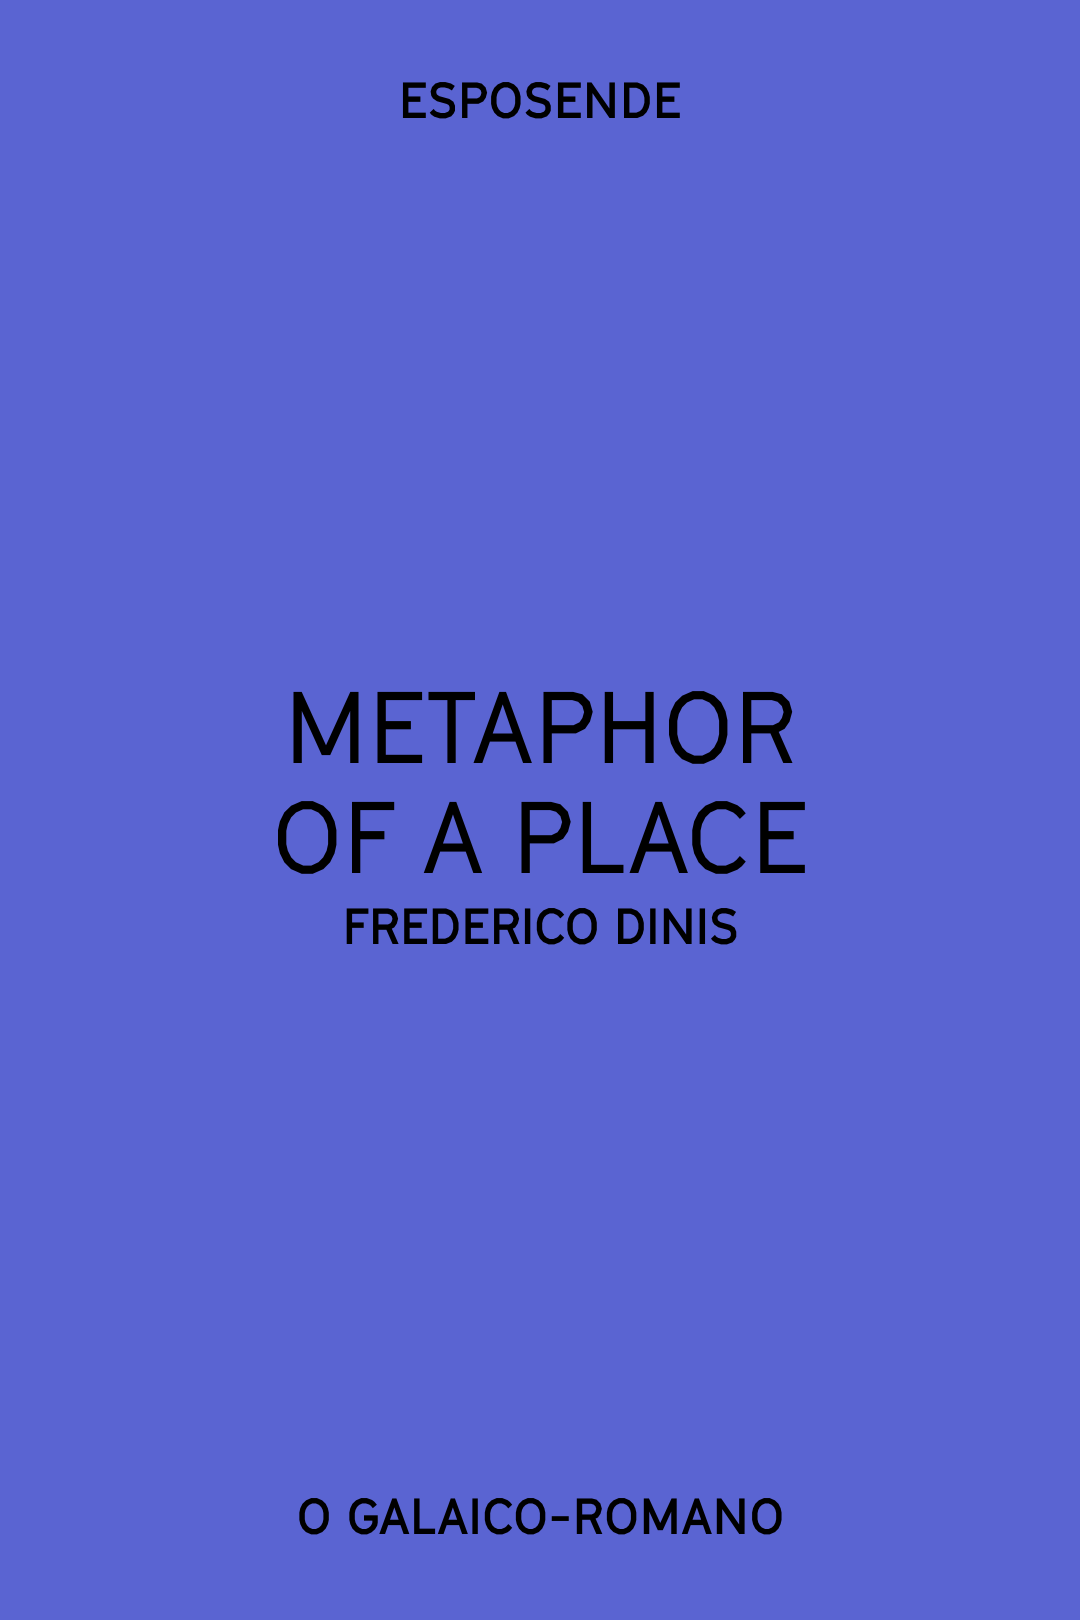 METAPHOR OF A PLACE (Frederico Dinis)